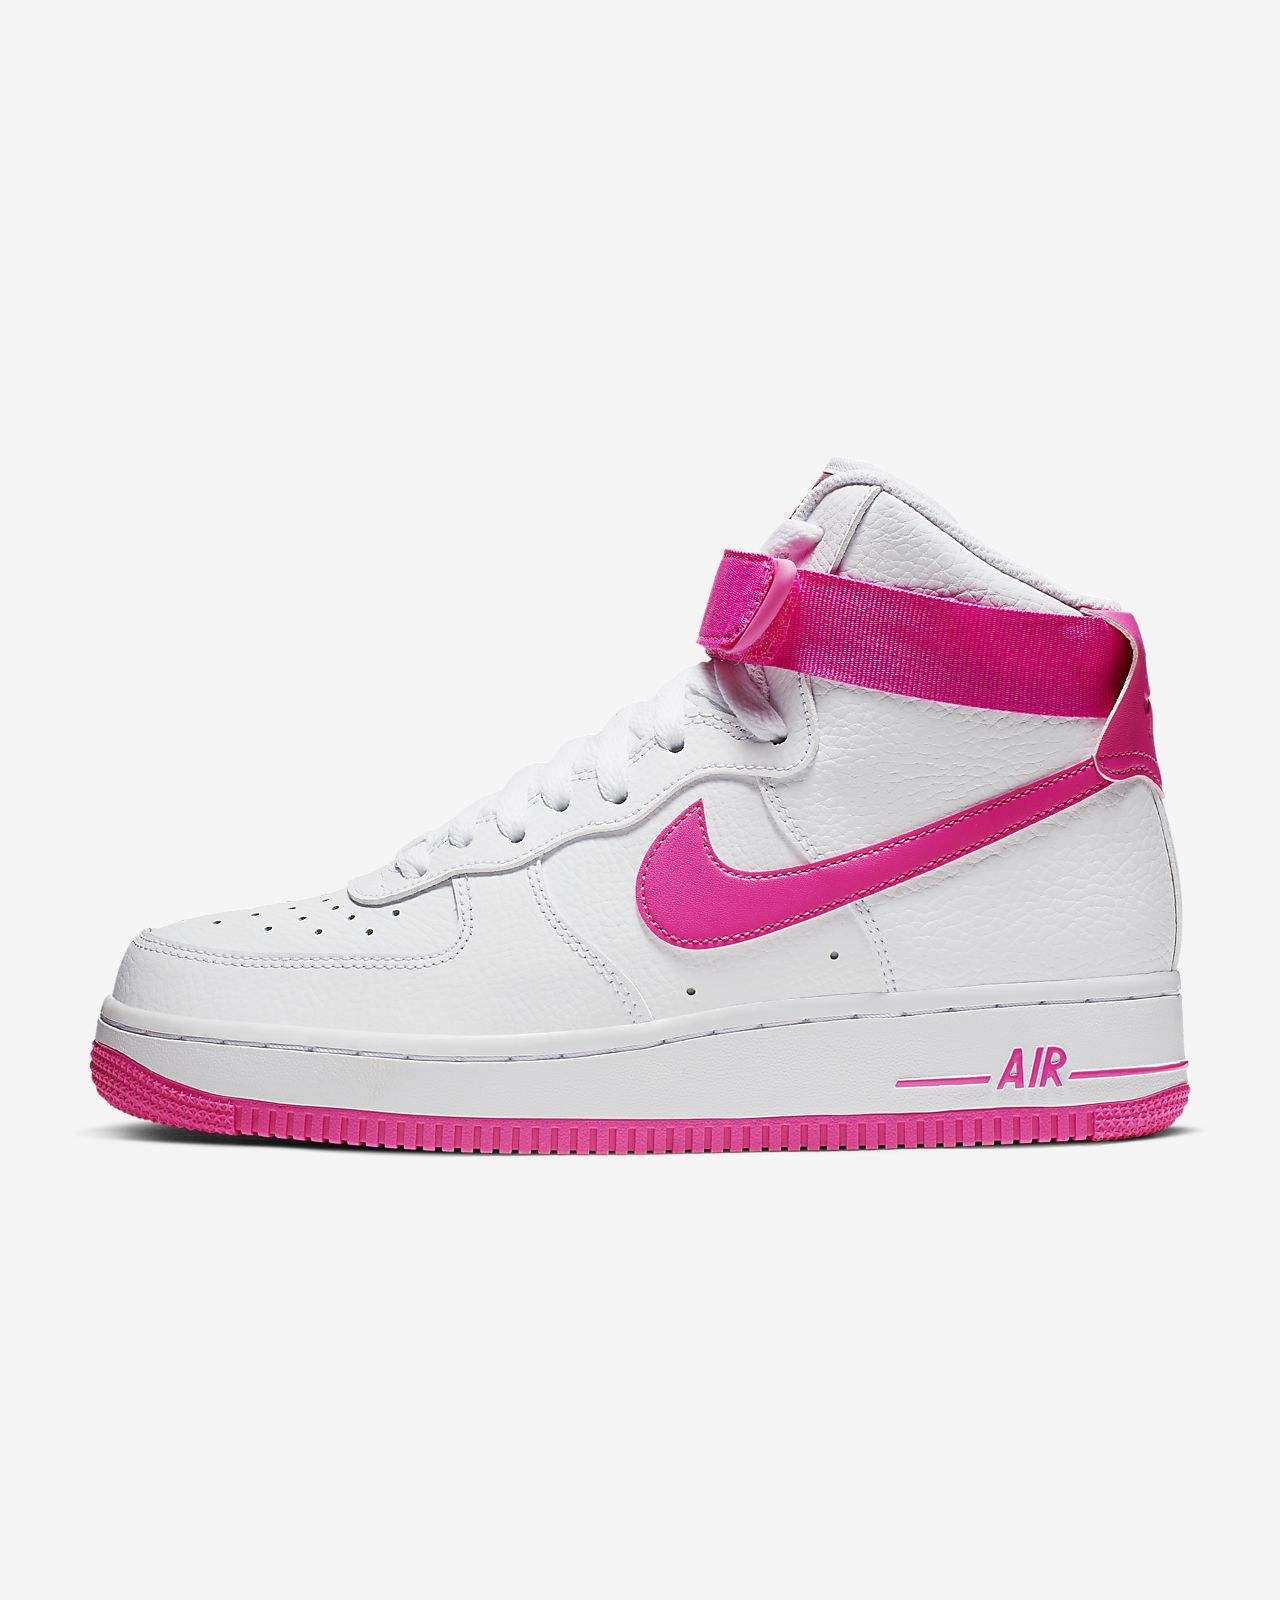 new arrival 6bdae aa727 ... Sko Nike Air Force 1 High 08 LE för kvinnor